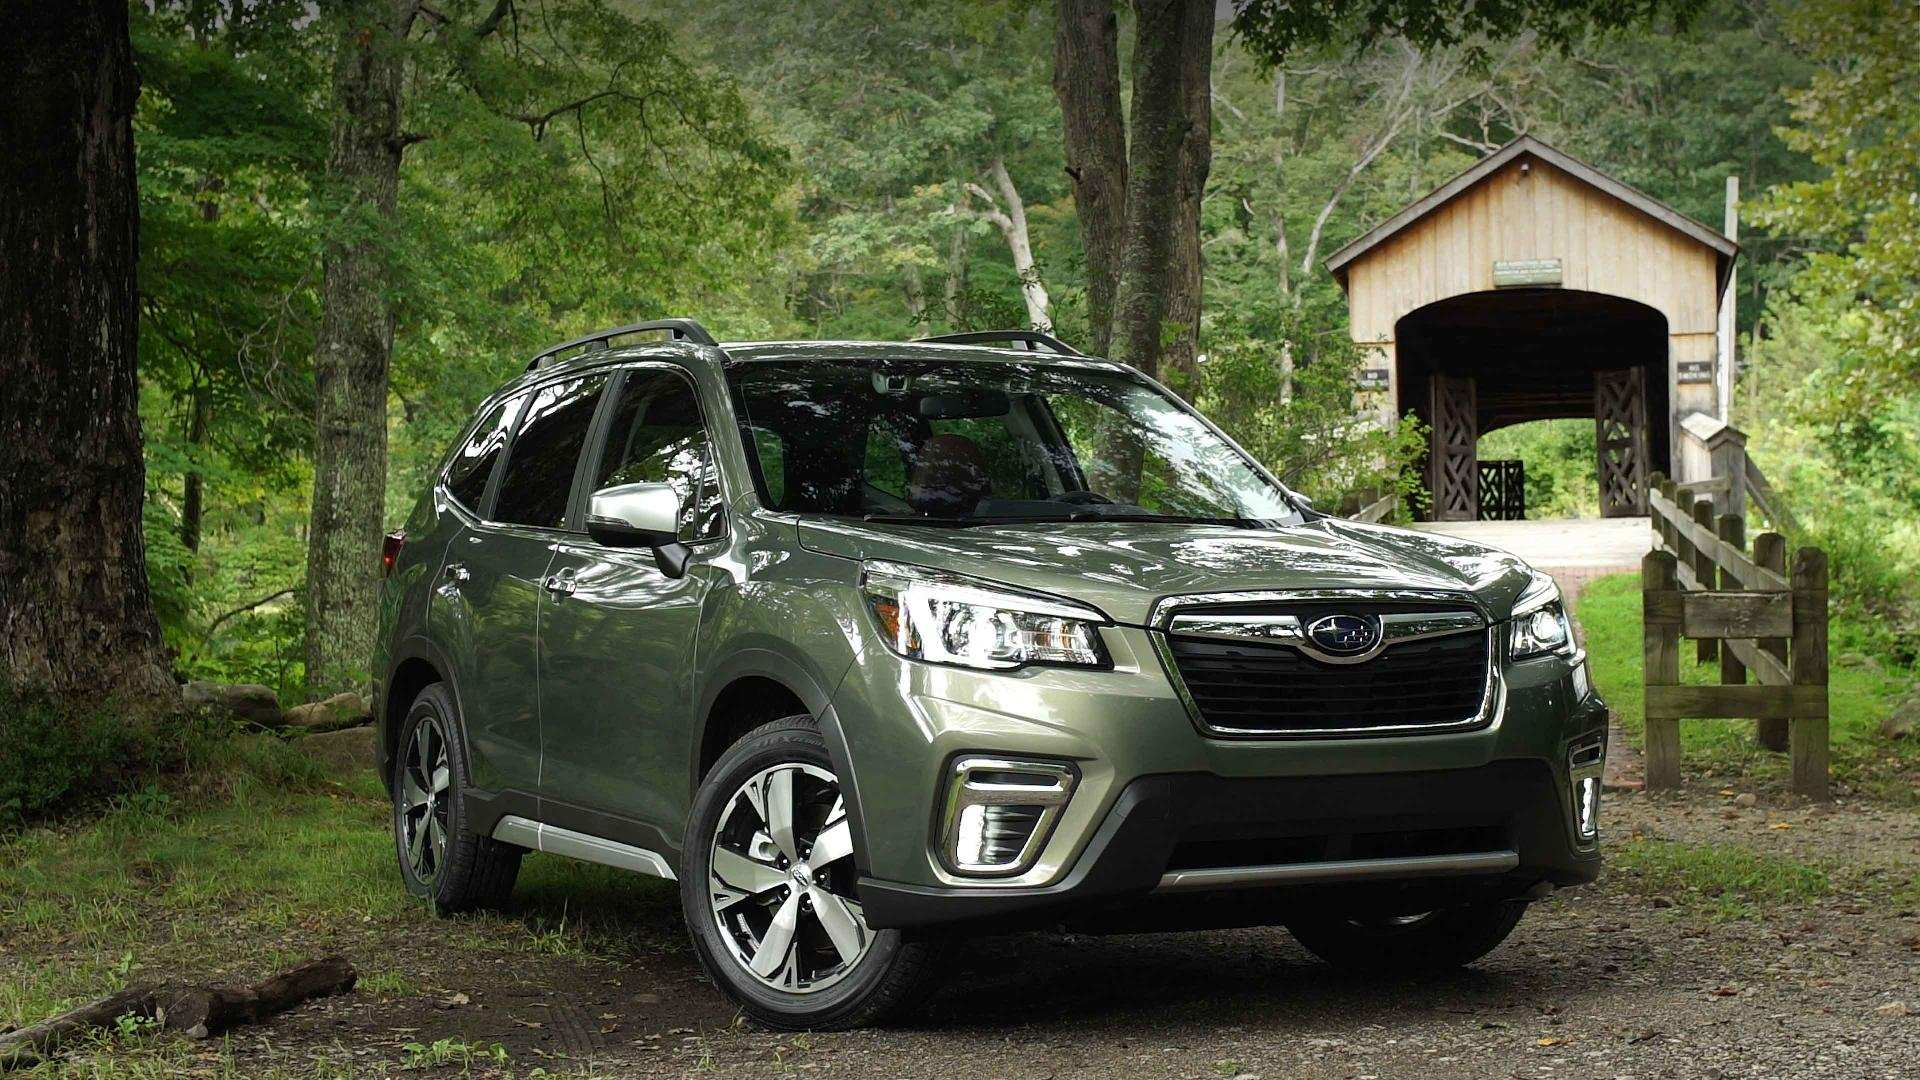 15 New 2019 Subaru Forester Mpg Exterior